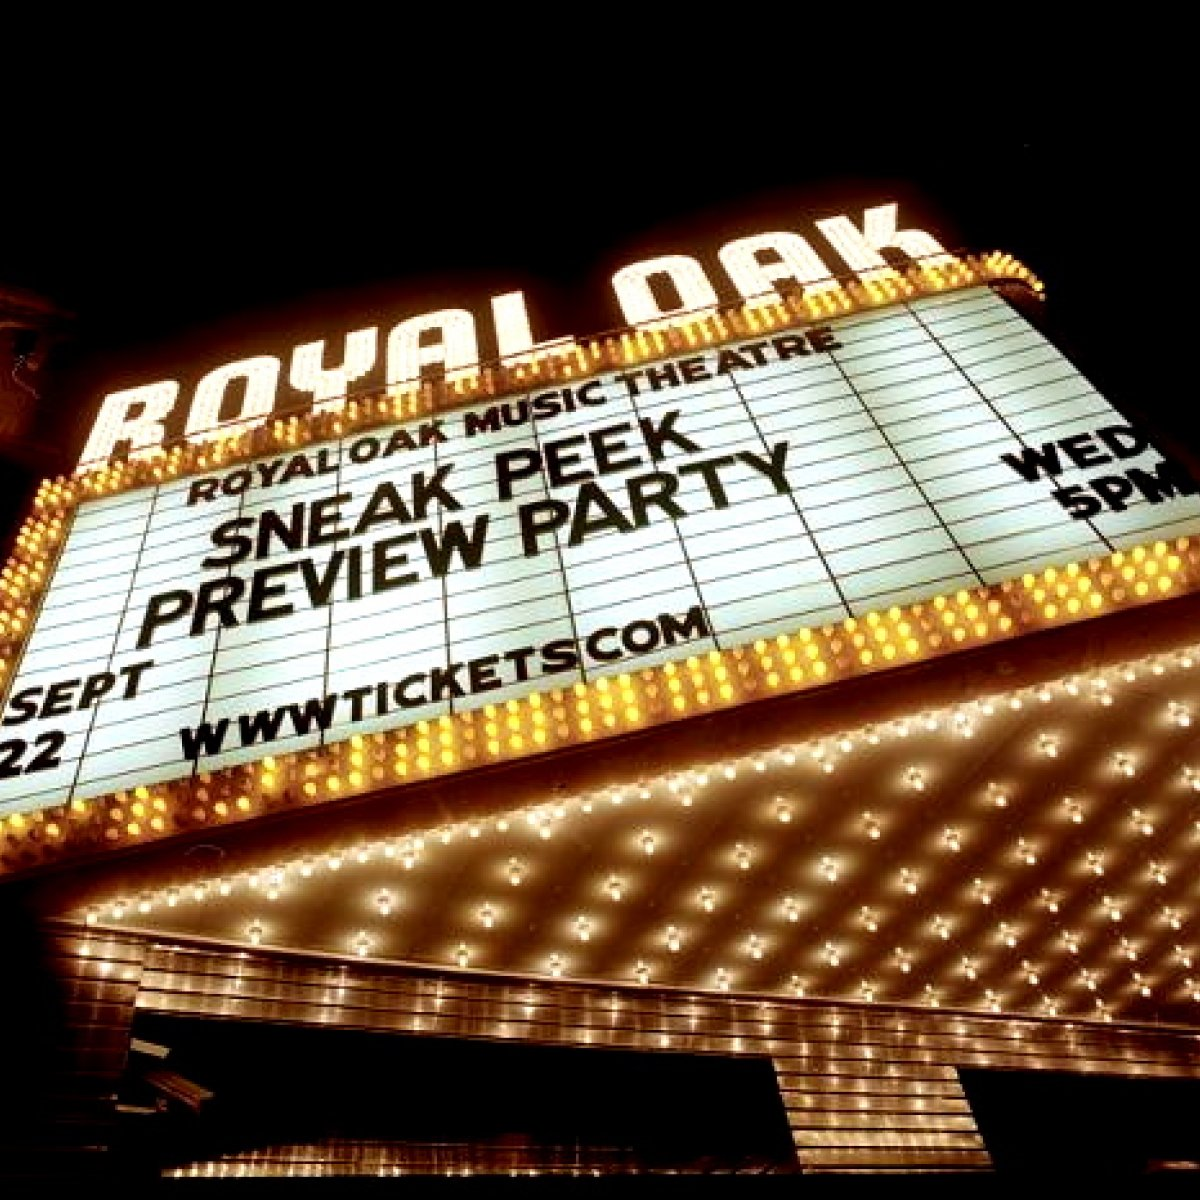 Exterior image of Royal Oak Music Theatre marquee